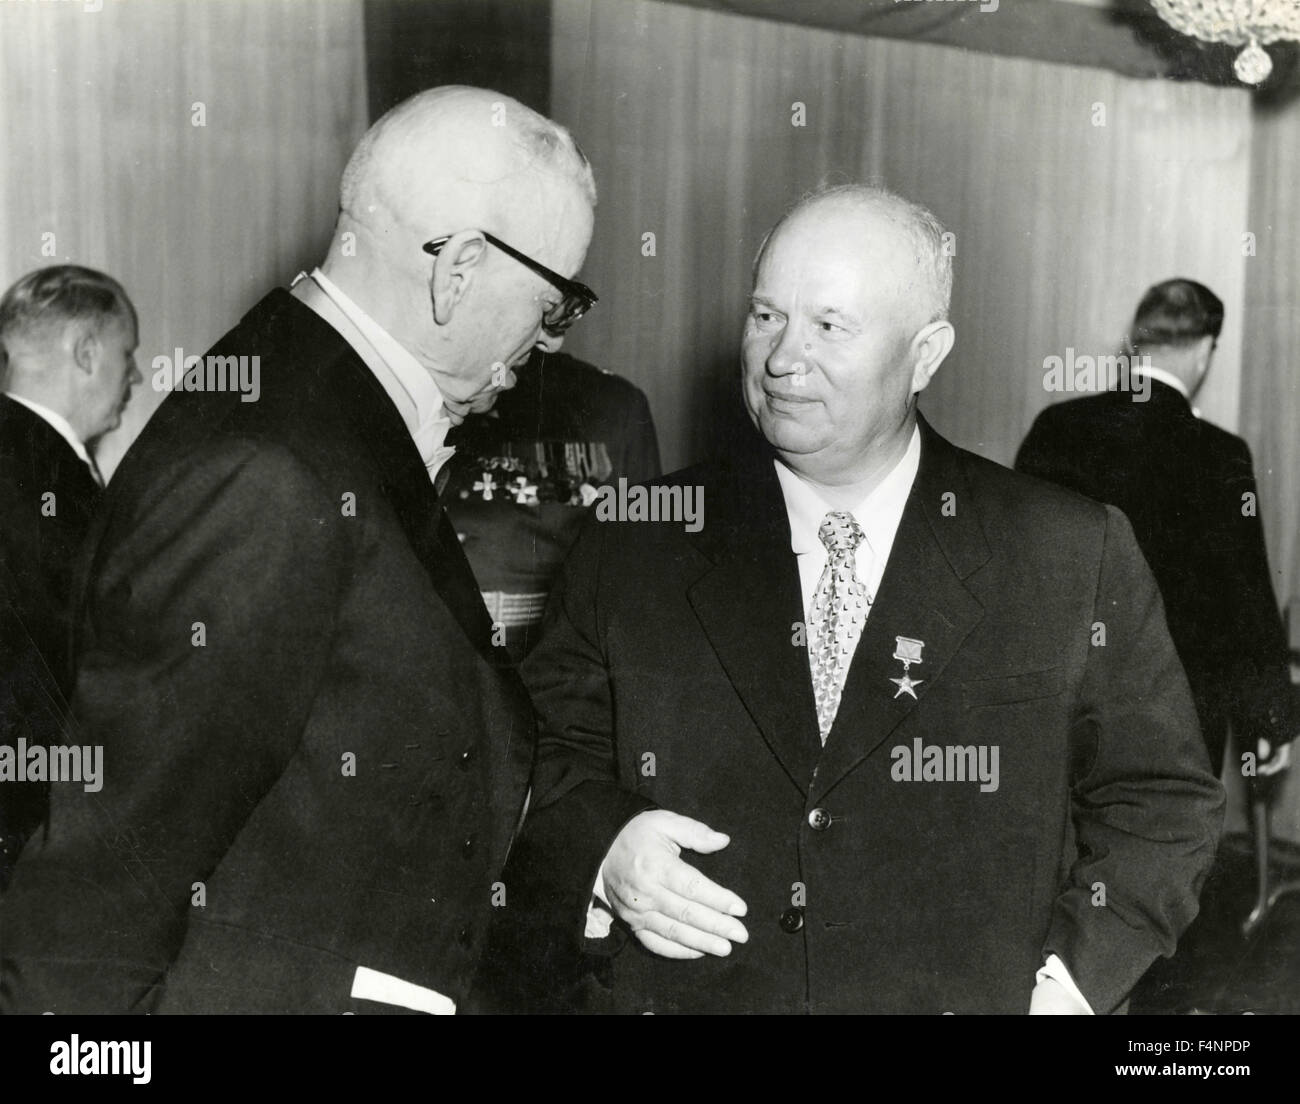 The Secretary General of the Communist Party of the USSR Nikita Khrushchev at a party - Stock Image